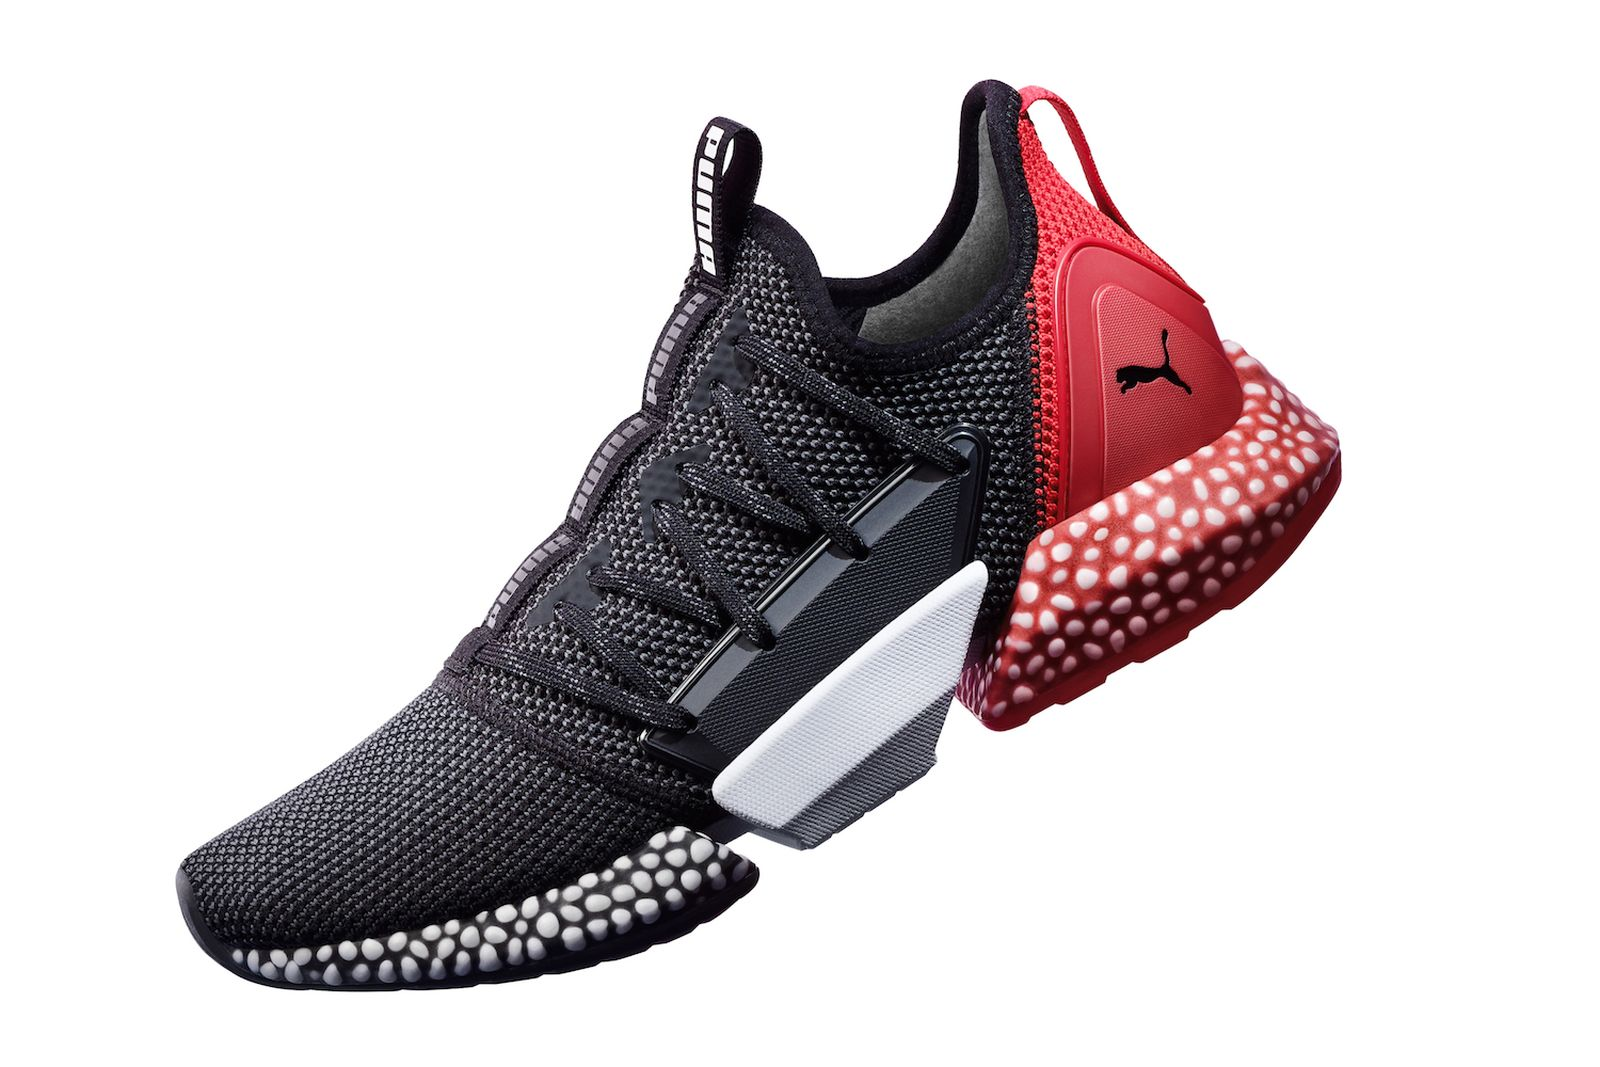 Here's How to Cop PUMA's New Hybrid Rocket Runner